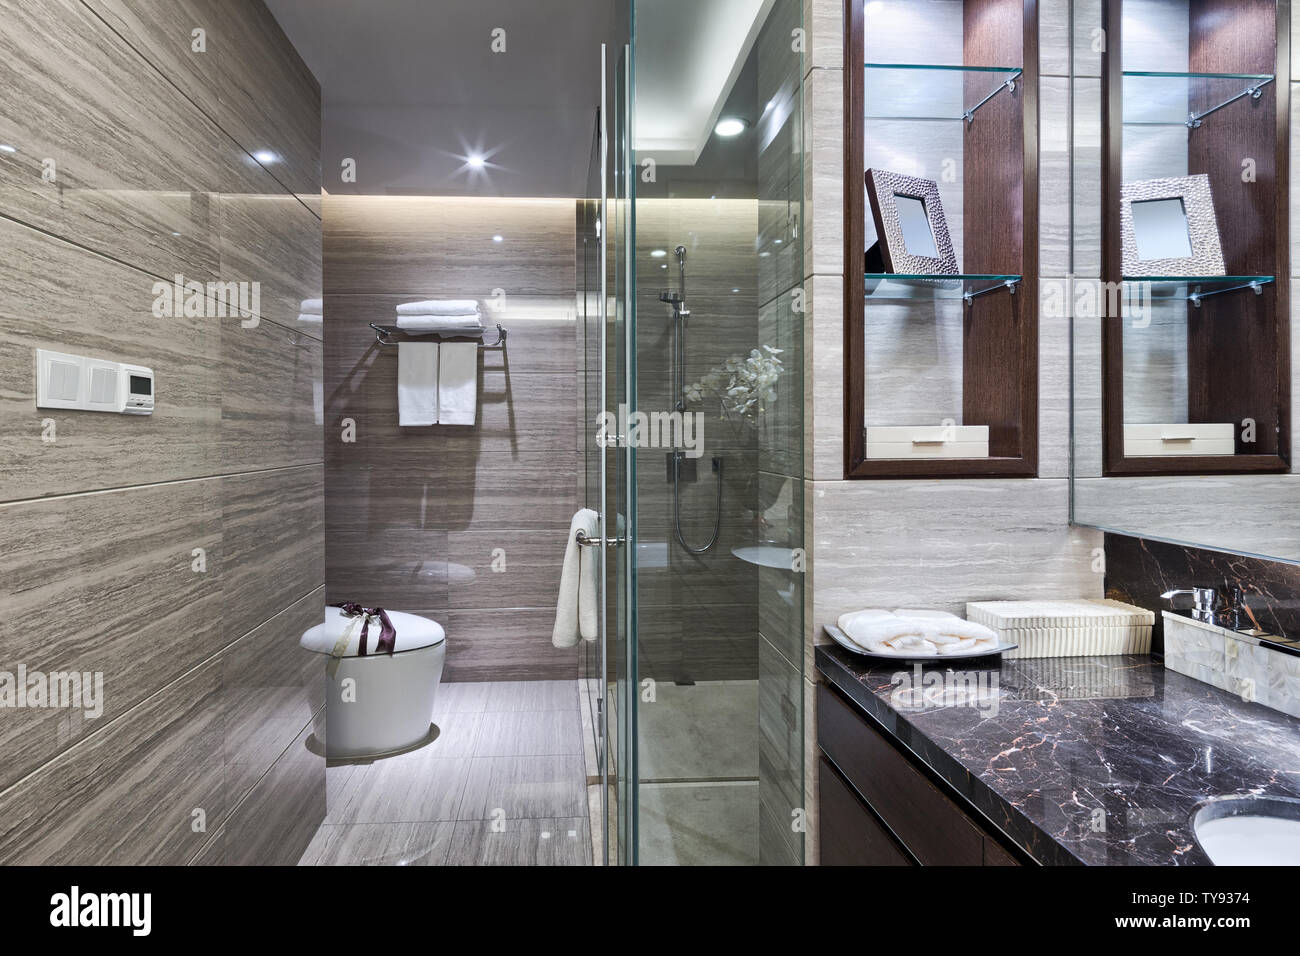 Luxury hotel bathroom interior and upscale furniture with modern